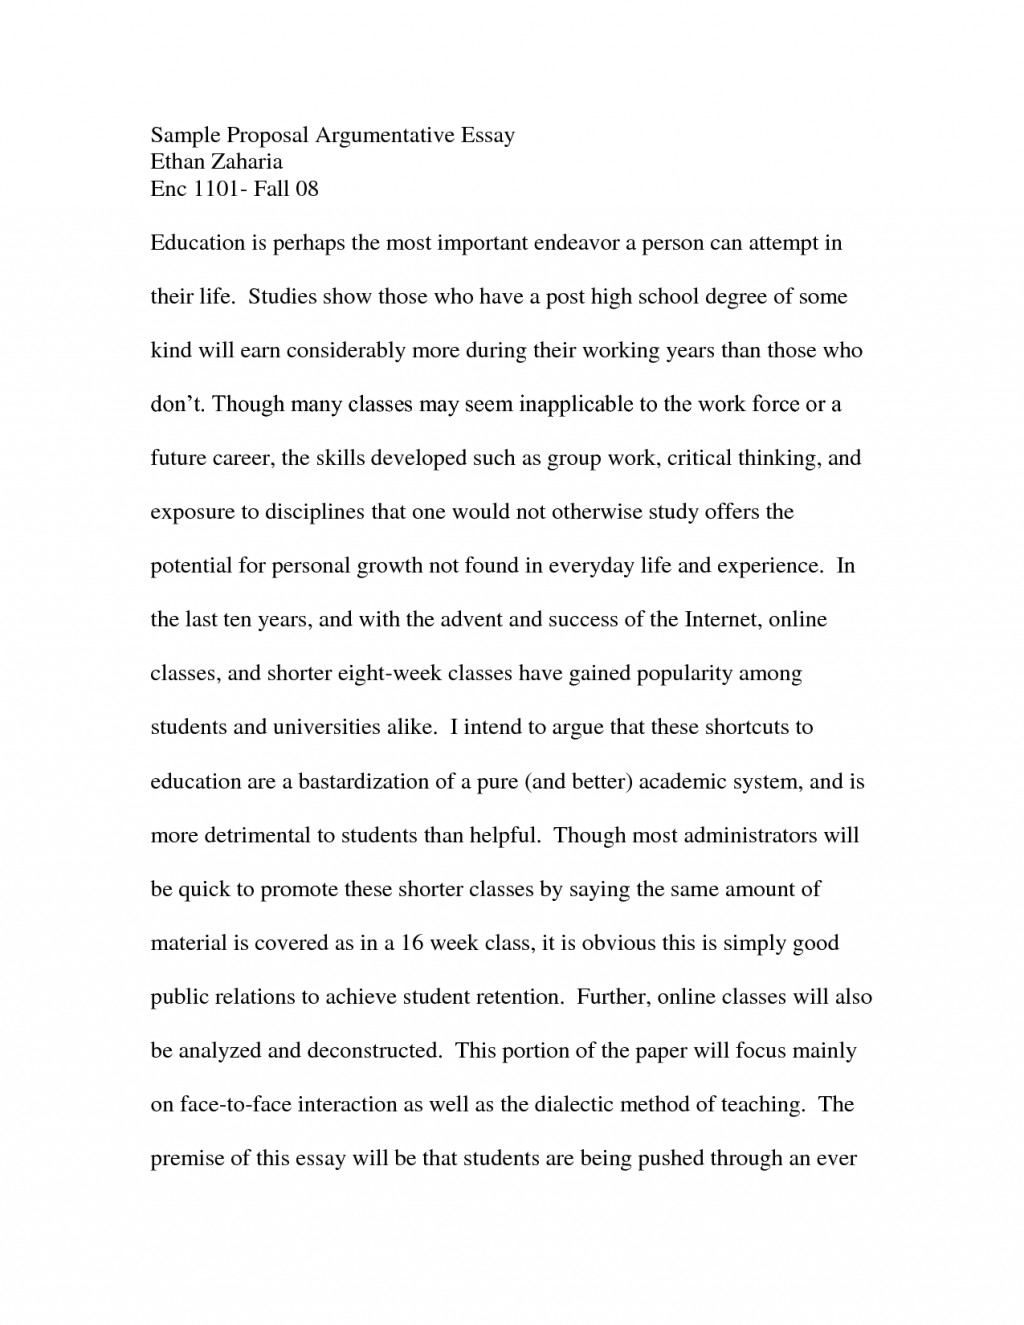 007 Essay Example 3d7hsocgst What Is Top A Proposal Argument The Purpose Of Large